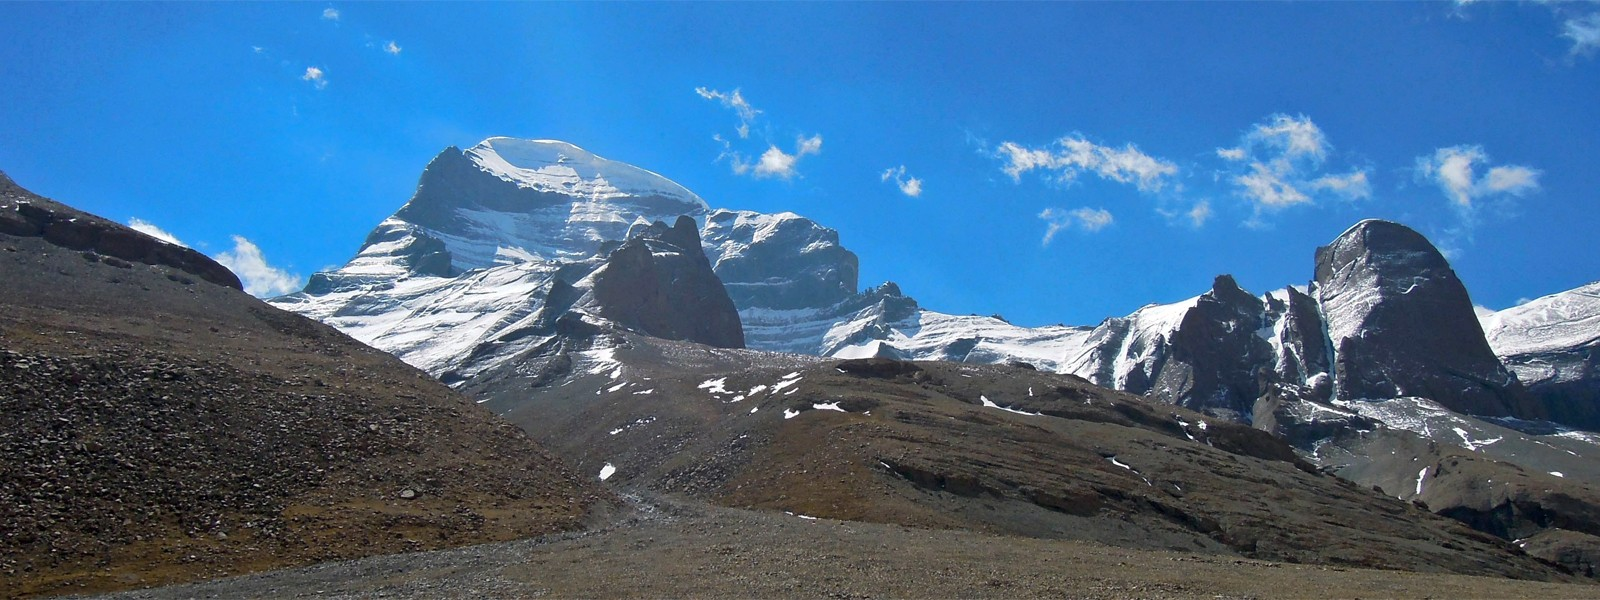 Holy Mt. Kailash Manasarover Tour